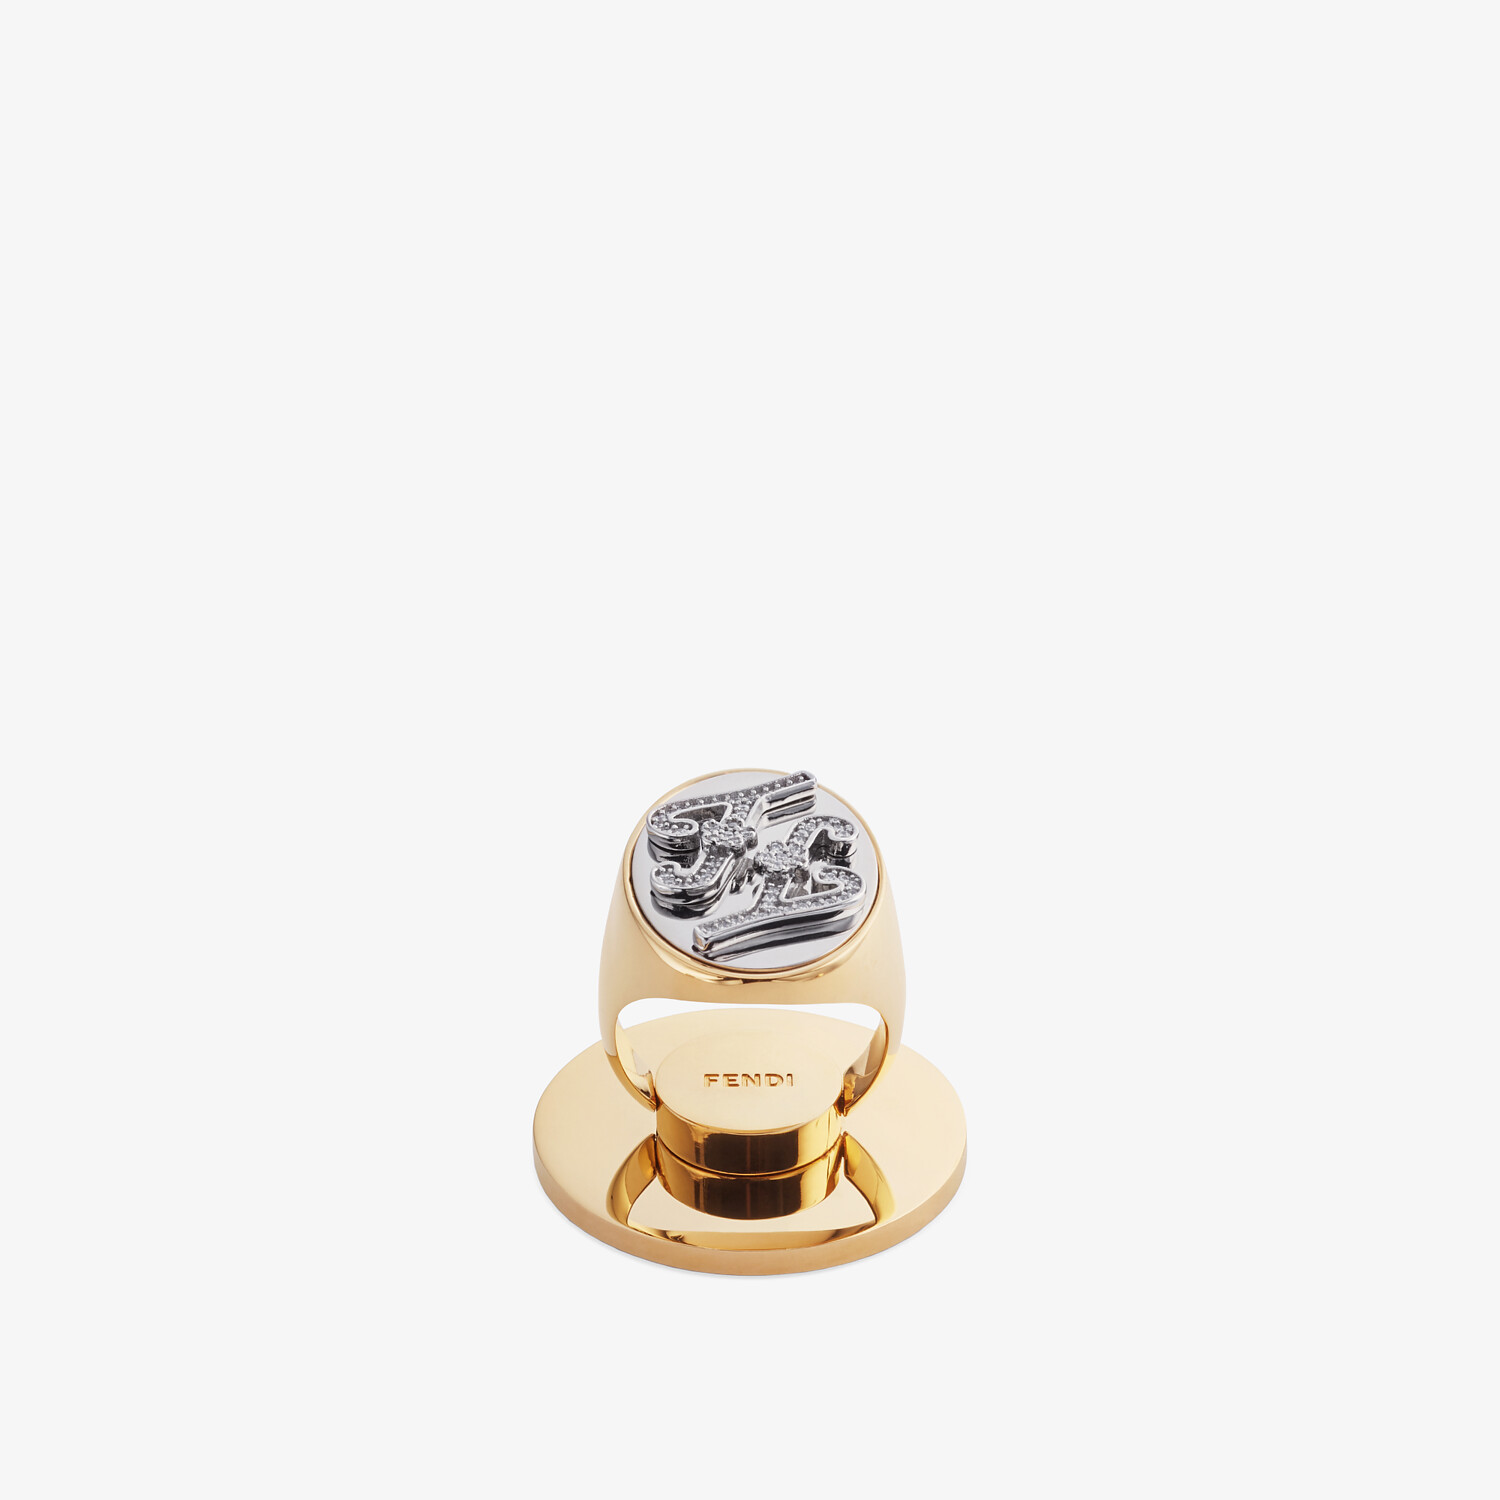 FENDI KARLIGRAPHY SMART RING - Gold-color ring - view 1 detail